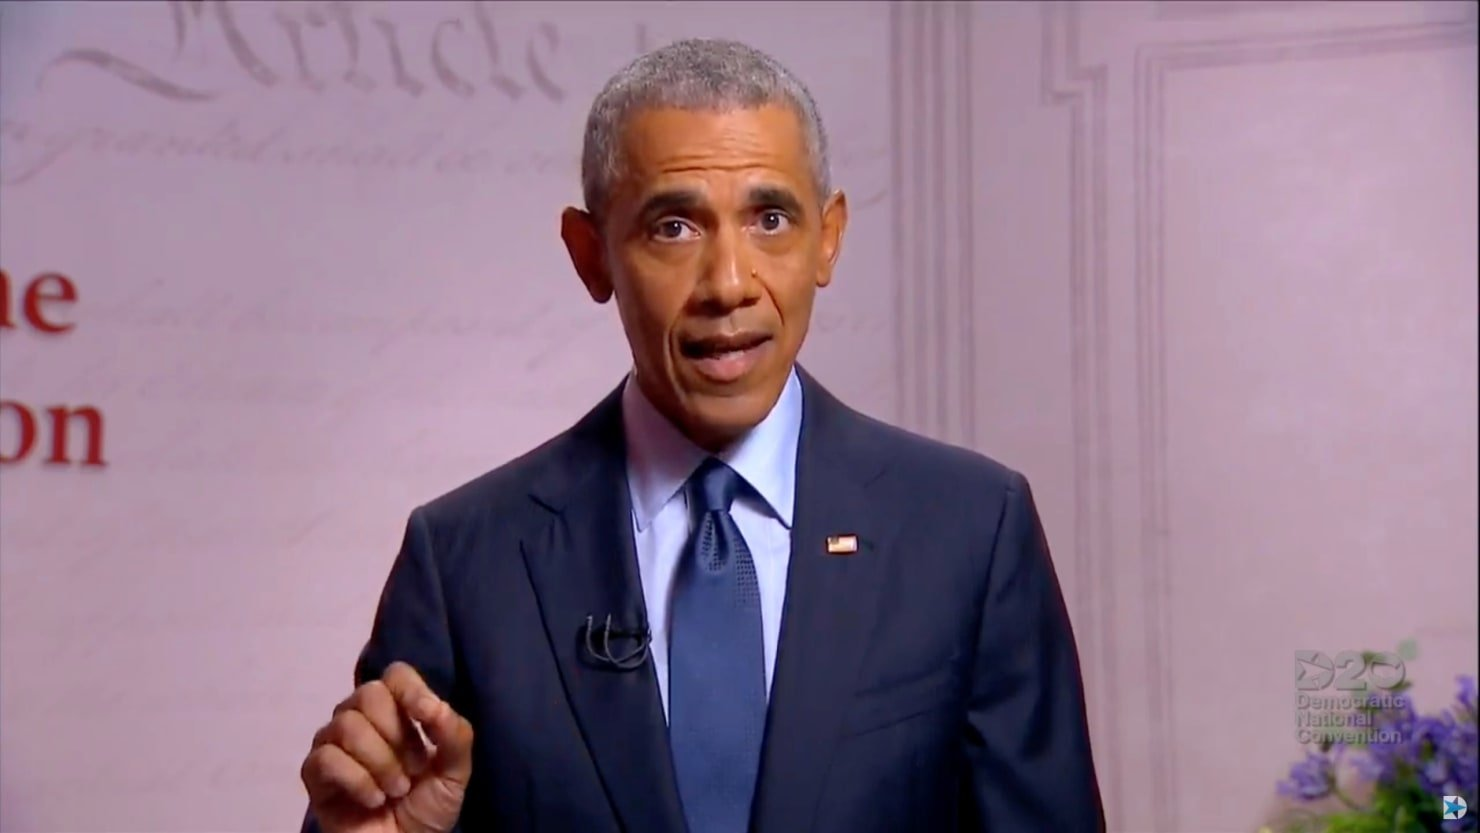 Obama Finally Gives Up 'Hope' for Something Far More Urgent